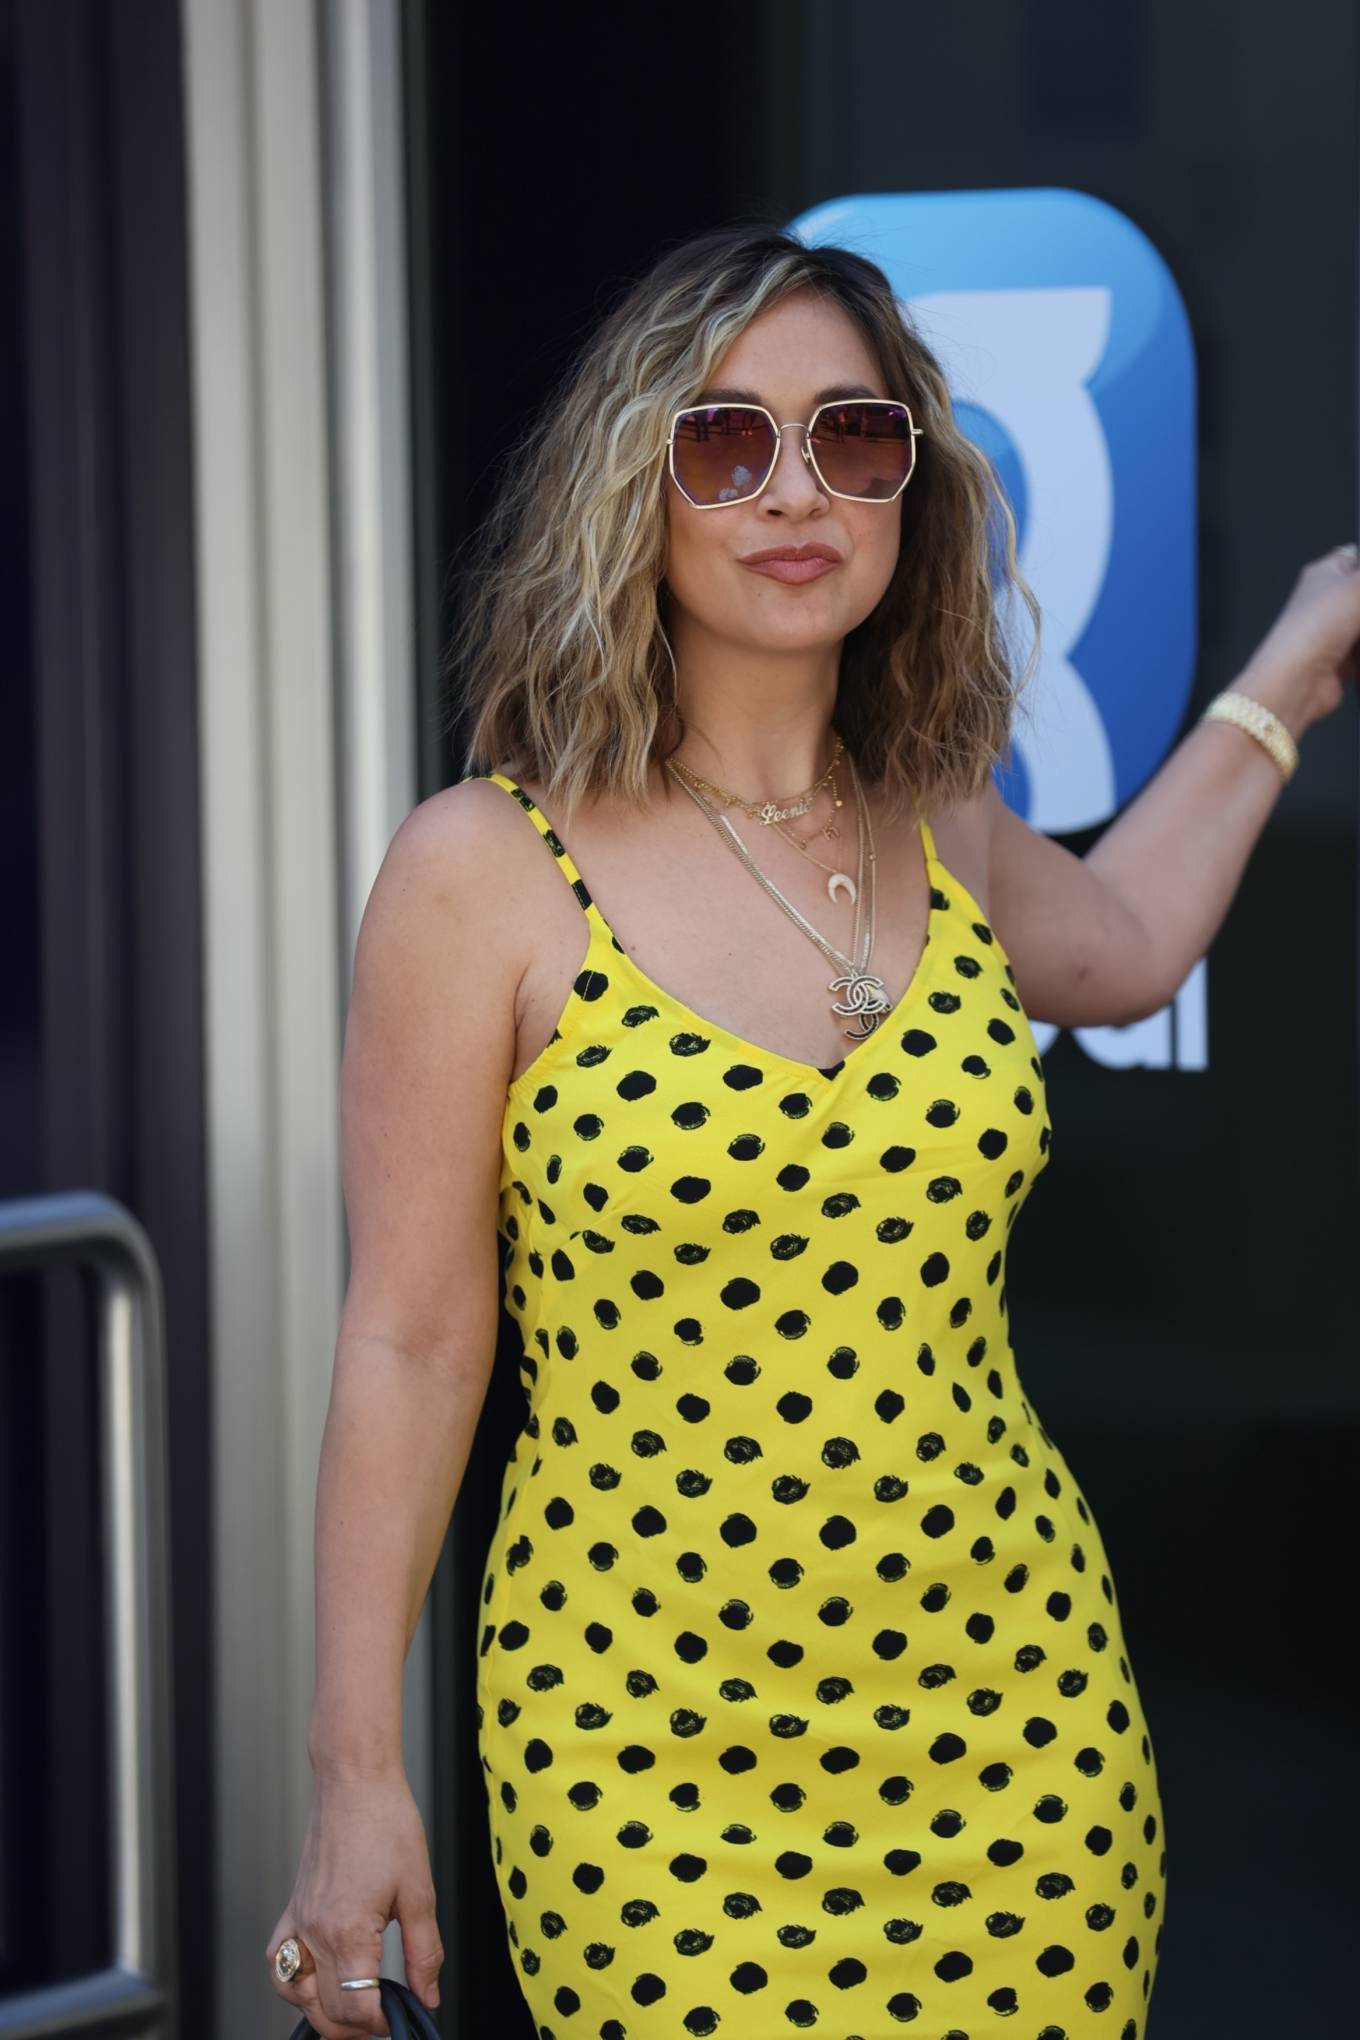 Myleene Klass 2020 : Myleene Klass – In yellow polka dot dress in London-18